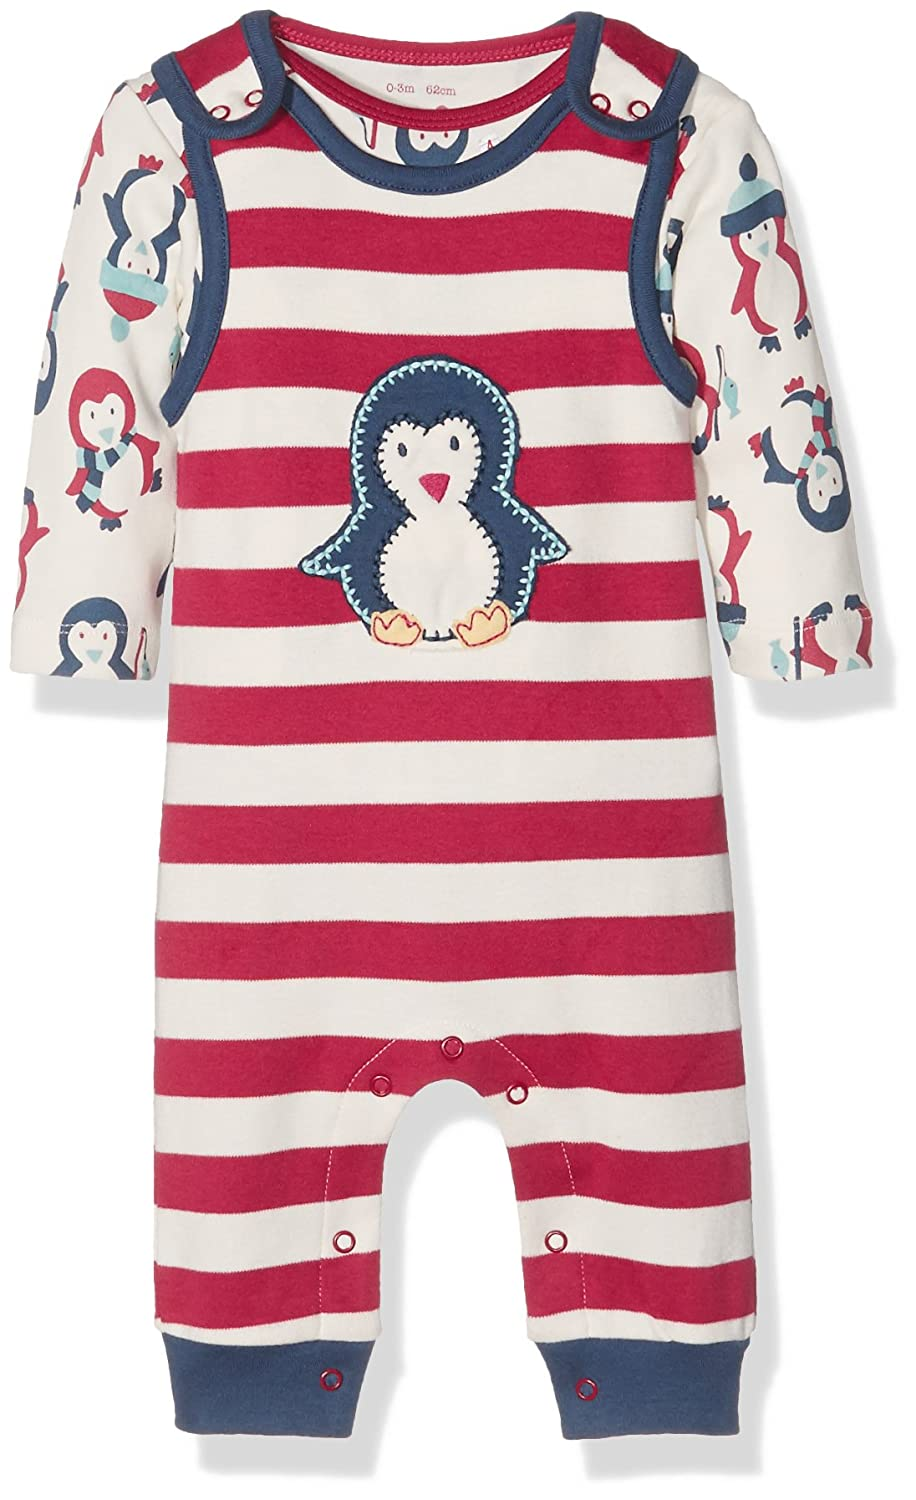 Kite Baby Penguin Dungaree Clothing Set BU015